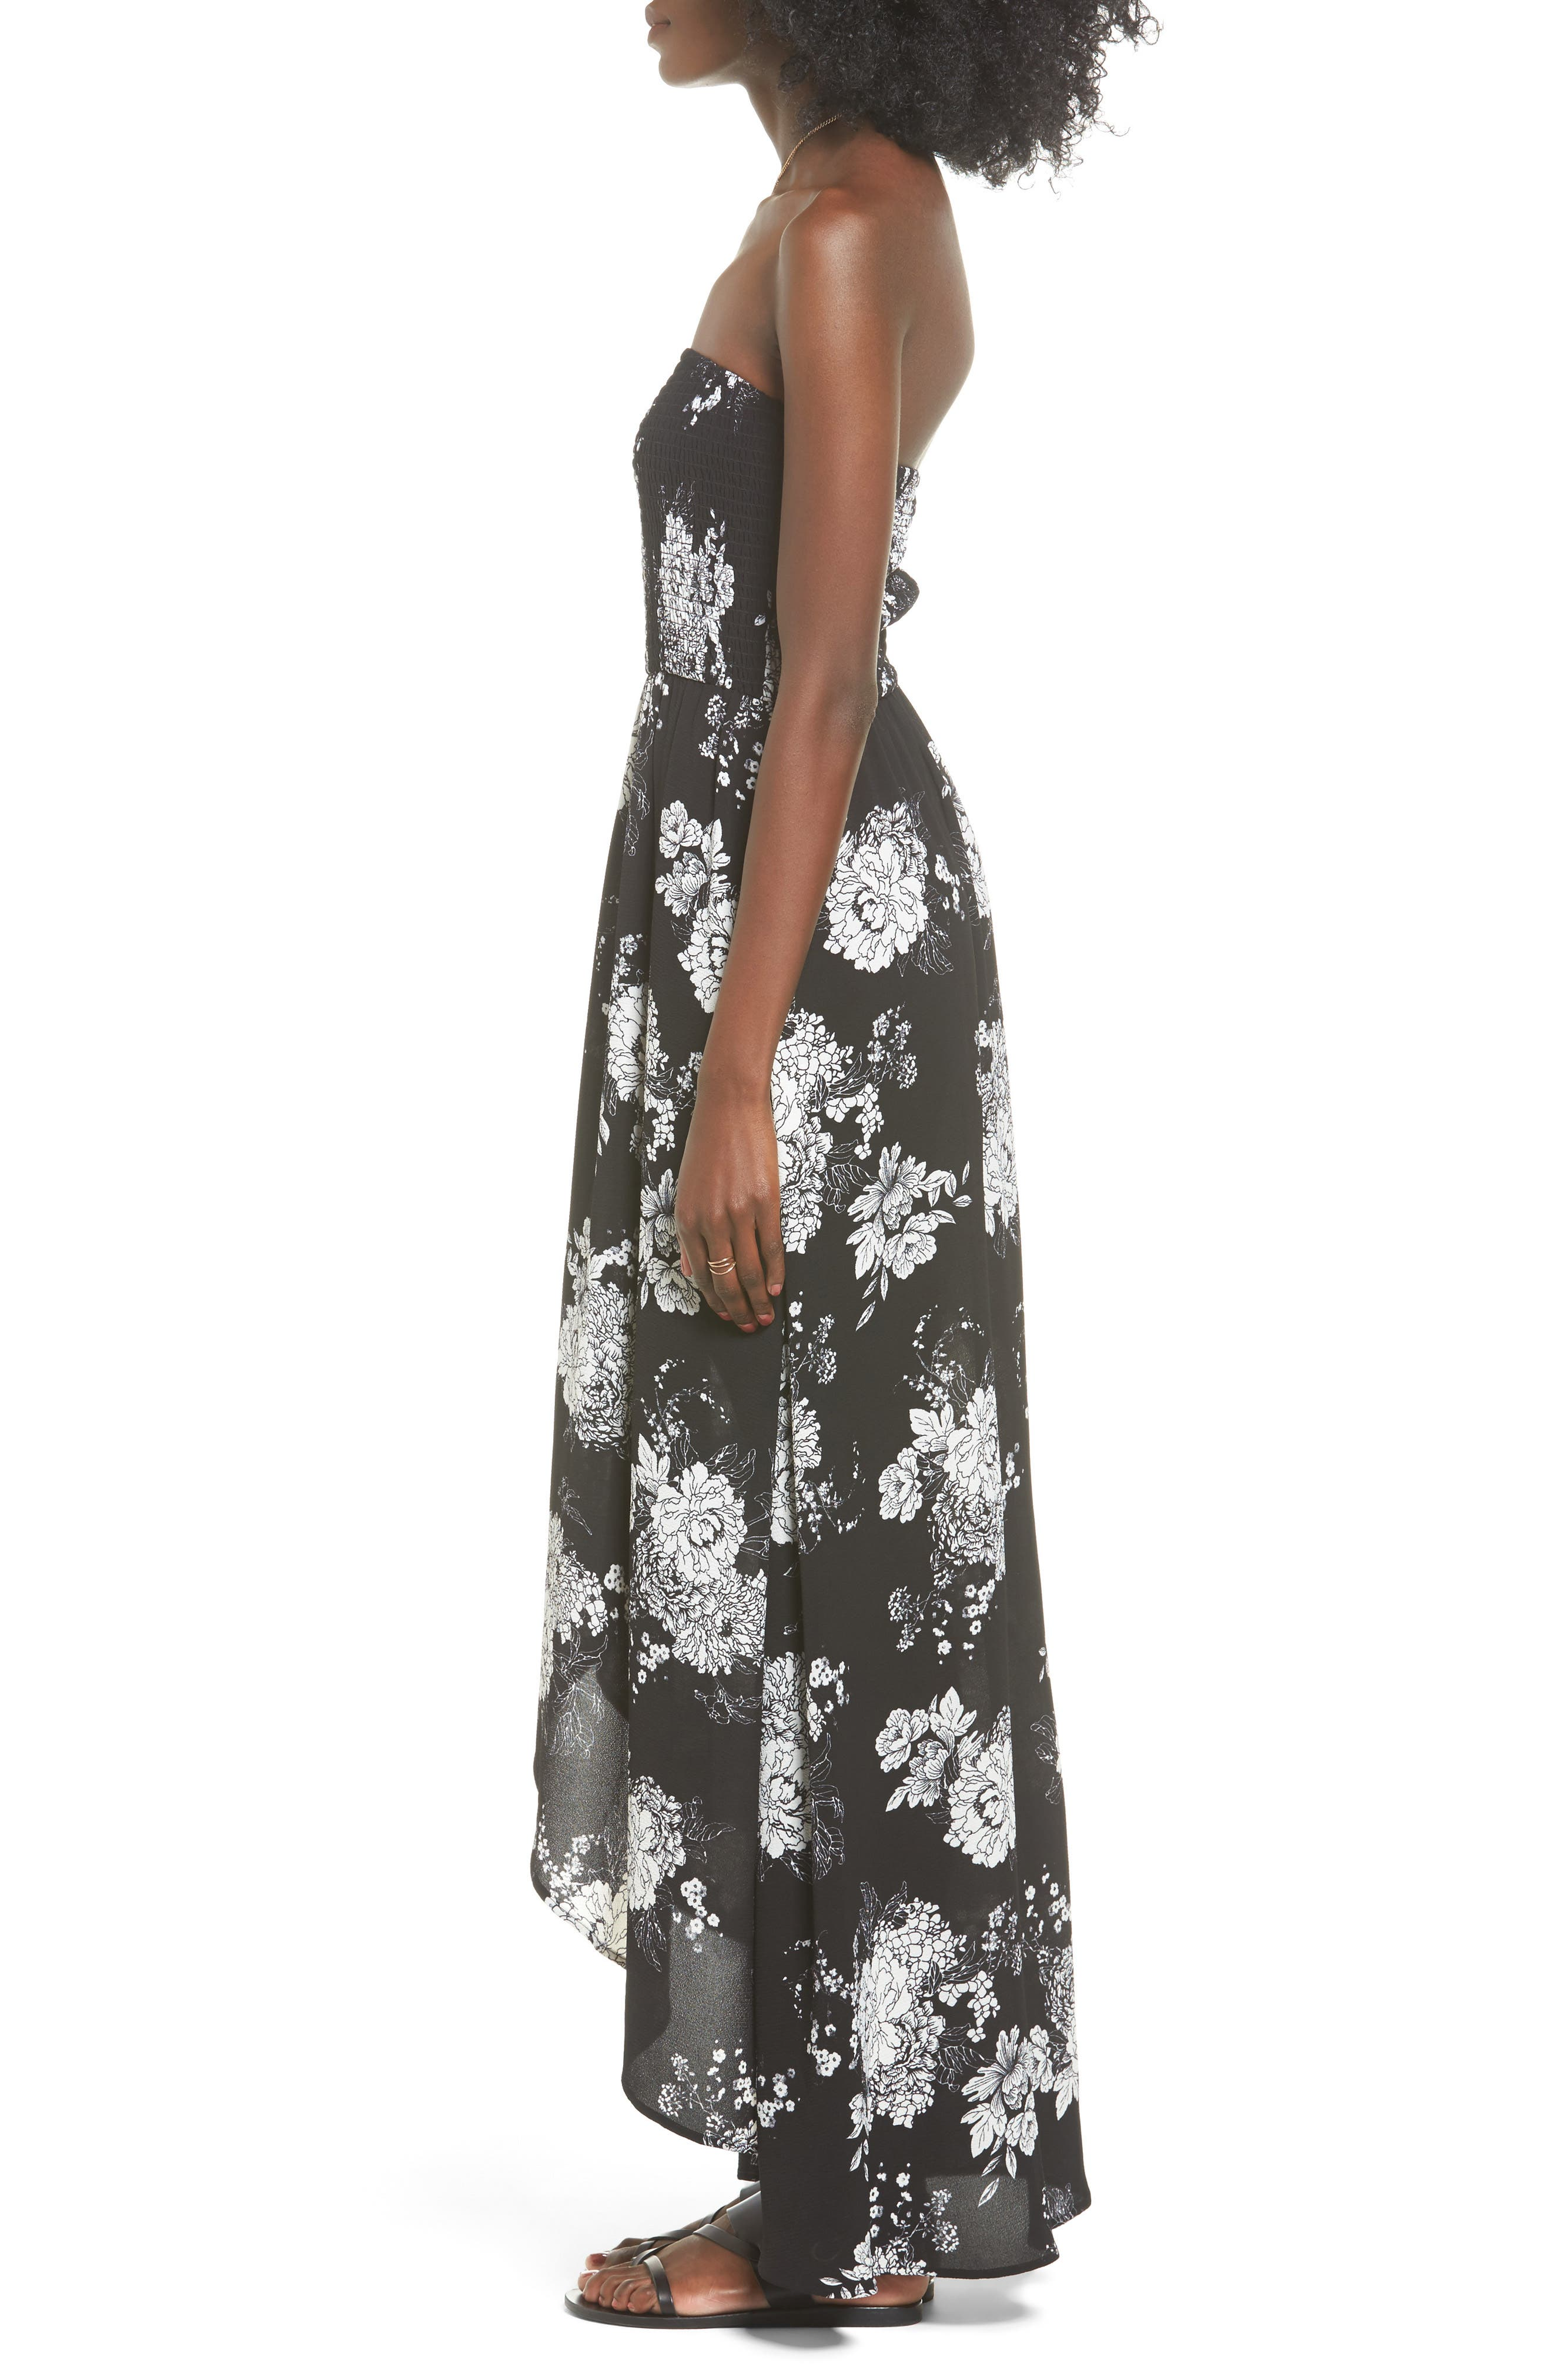 Smocked Strapless Maxi Dress,                             Alternate thumbnail 3, color,                             Black/ Ivory Floral